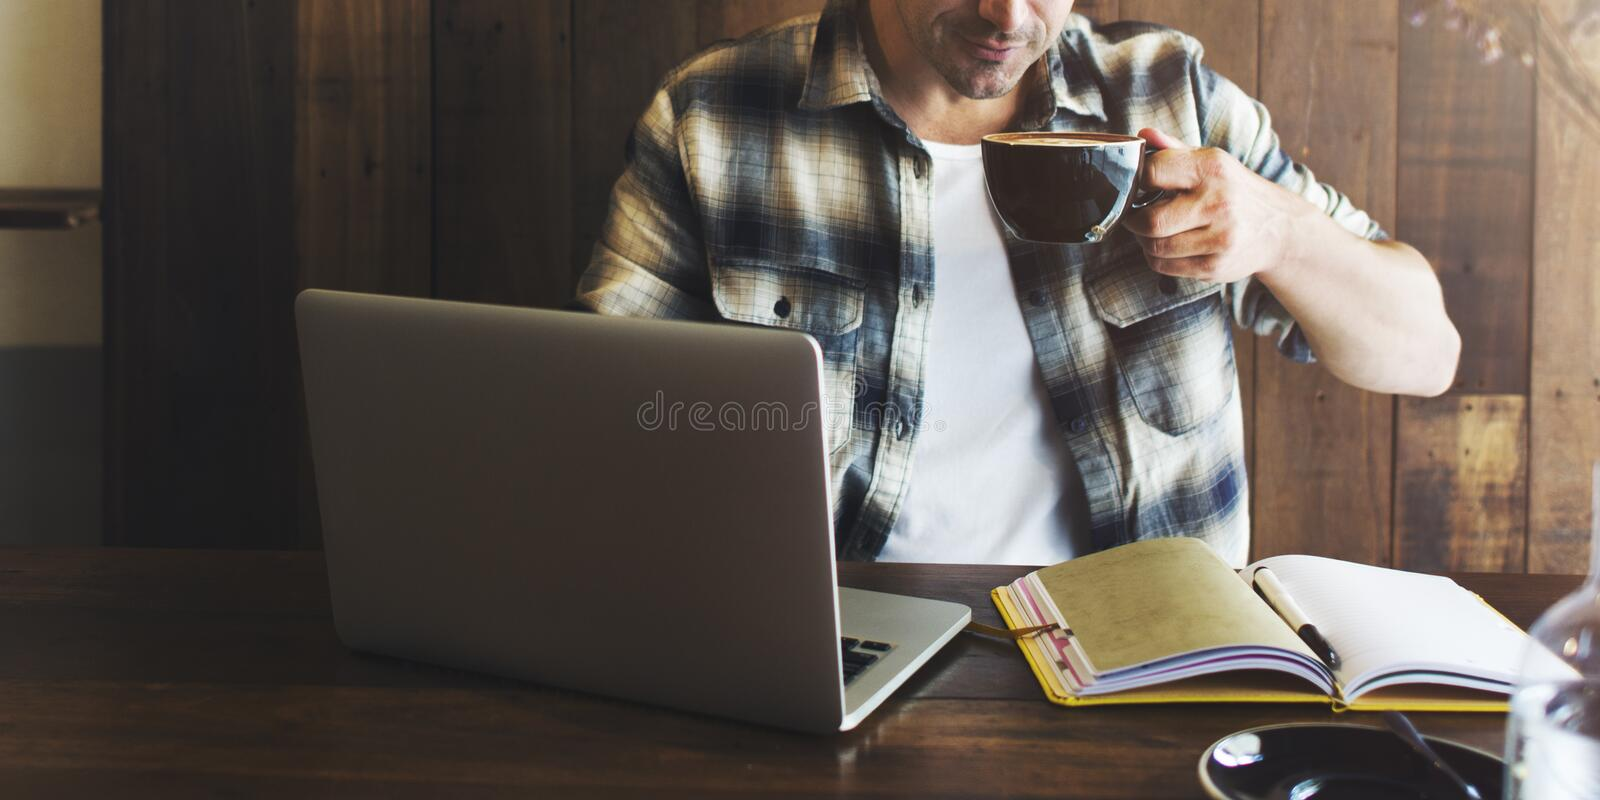 Man Relax Lifestyle Working Coffee Shop Concept.  stock photos